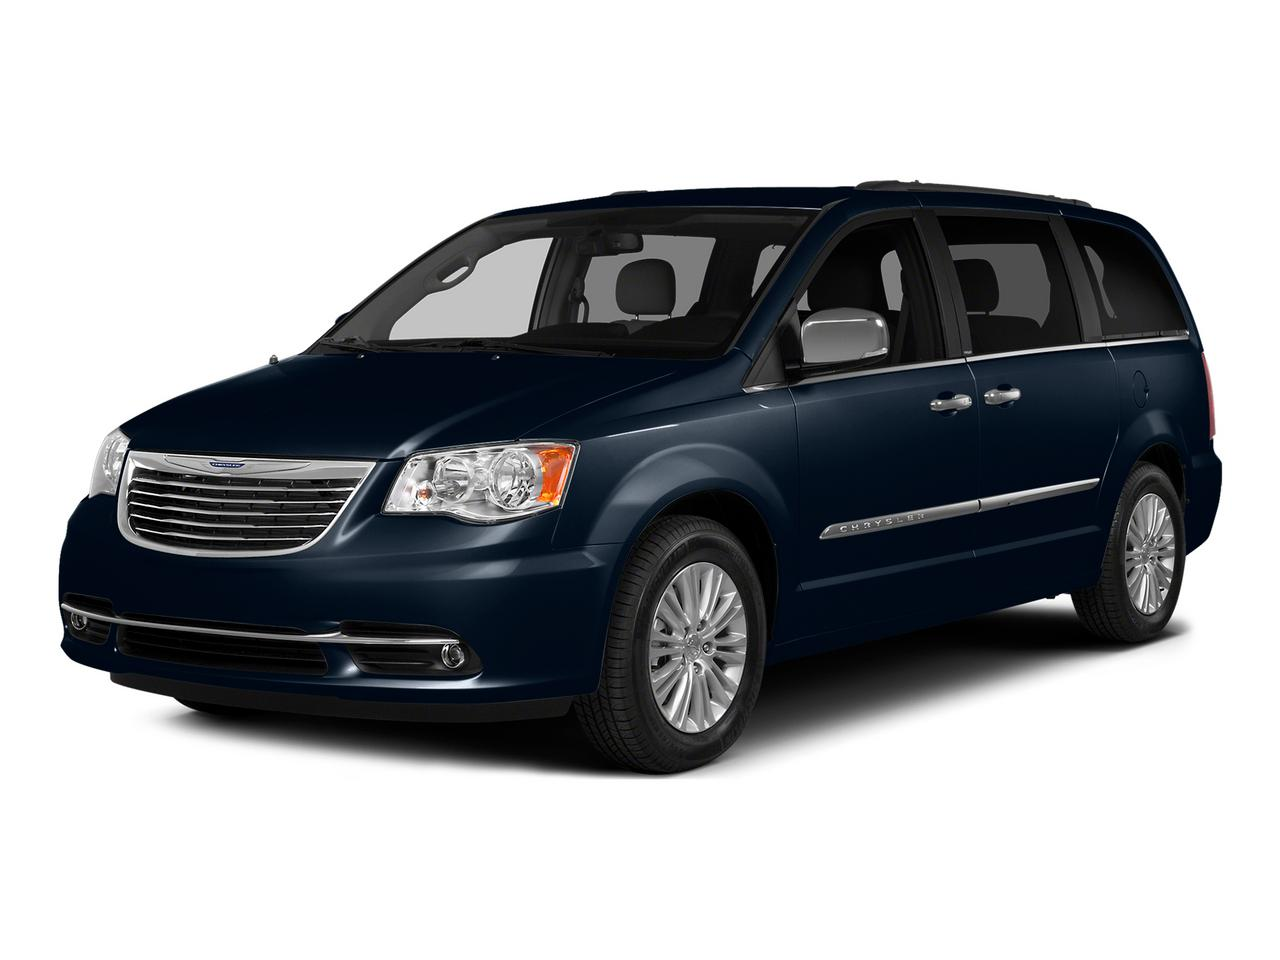 2015 Chrysler Town & Country Vehicle Photo in Smyrna, DE 19977